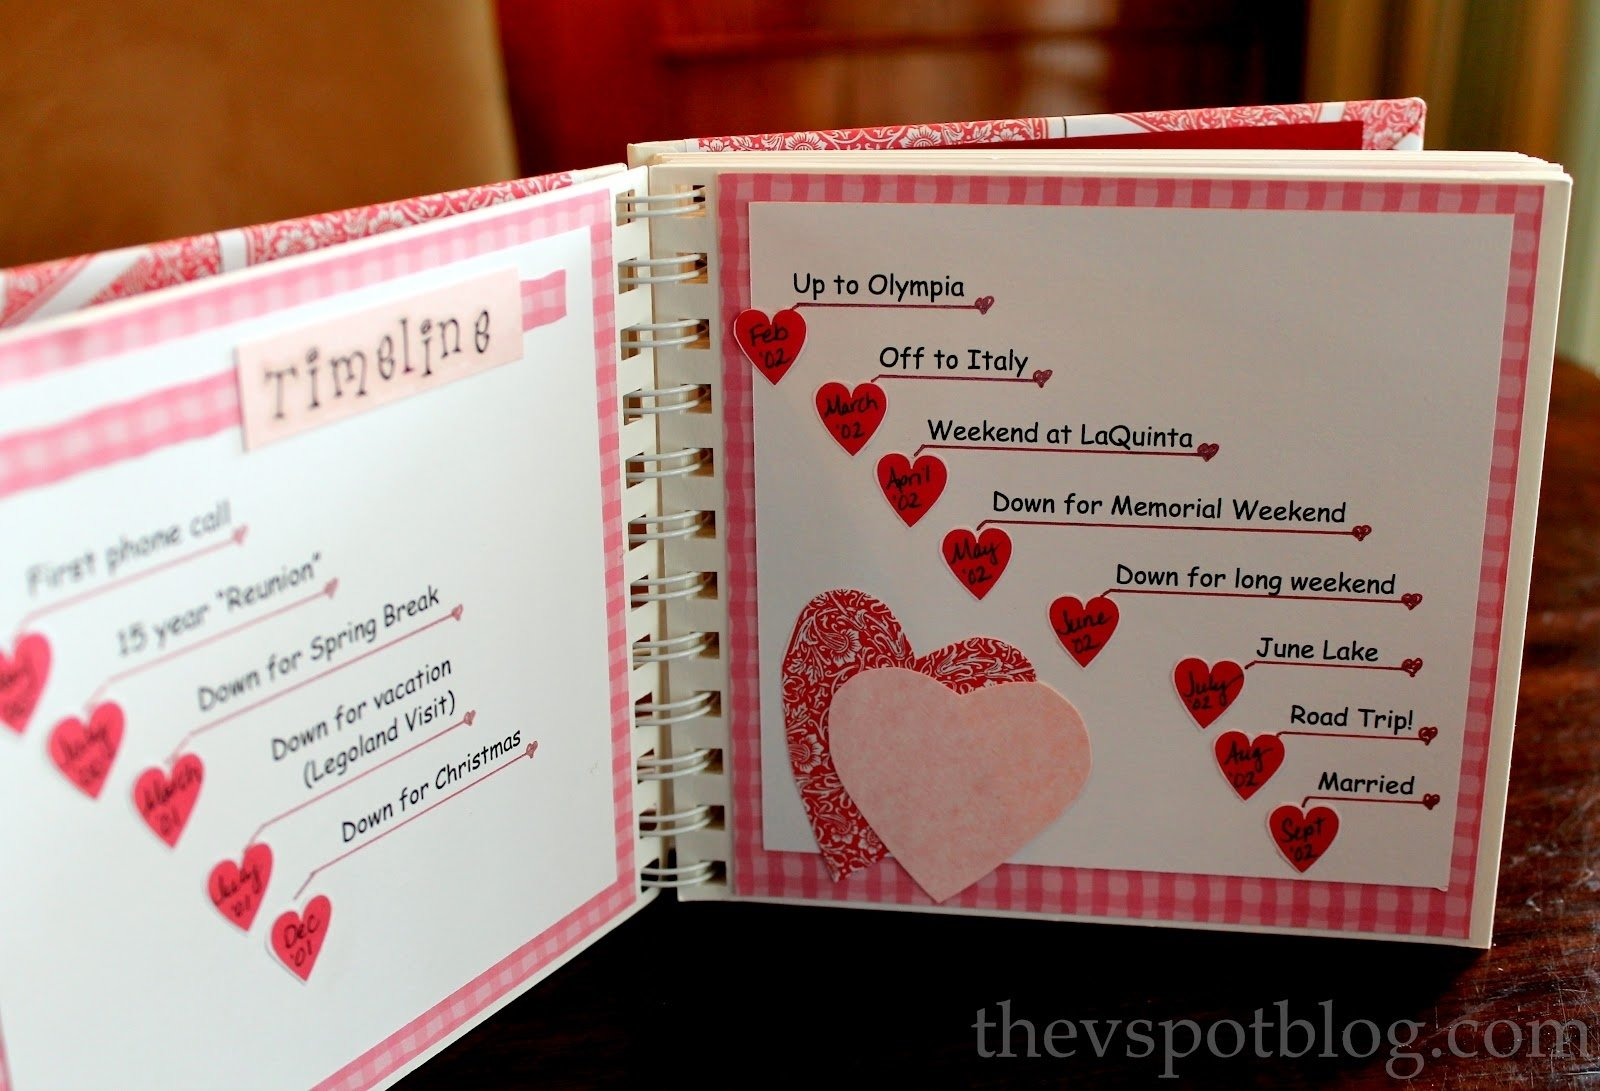 10 Lovable Unique Valentines Day Ideas For Him valentine day new creative ideas boyfriend husband him home art 34 2020